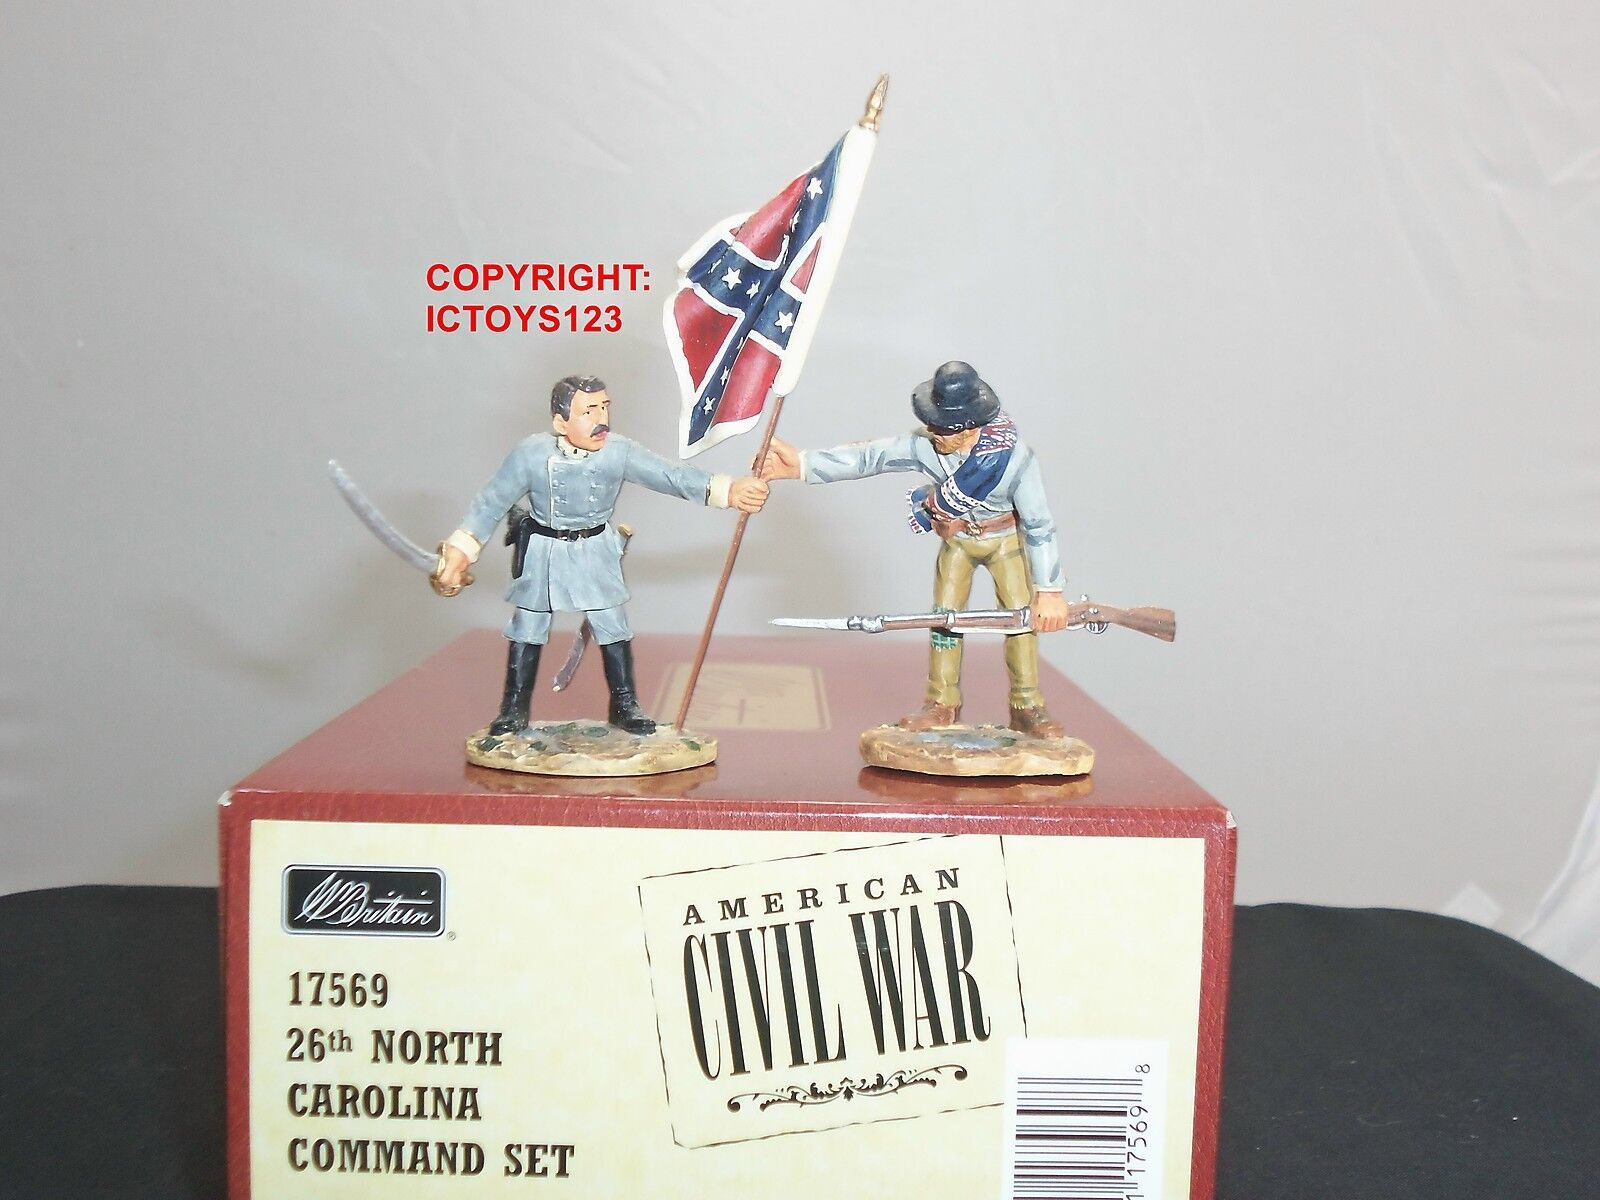 BRITAINS 17569 AMERICAN 26TH NORTH CAROLINA METAL TOY SOLDIER FIGURE COMMAND SET